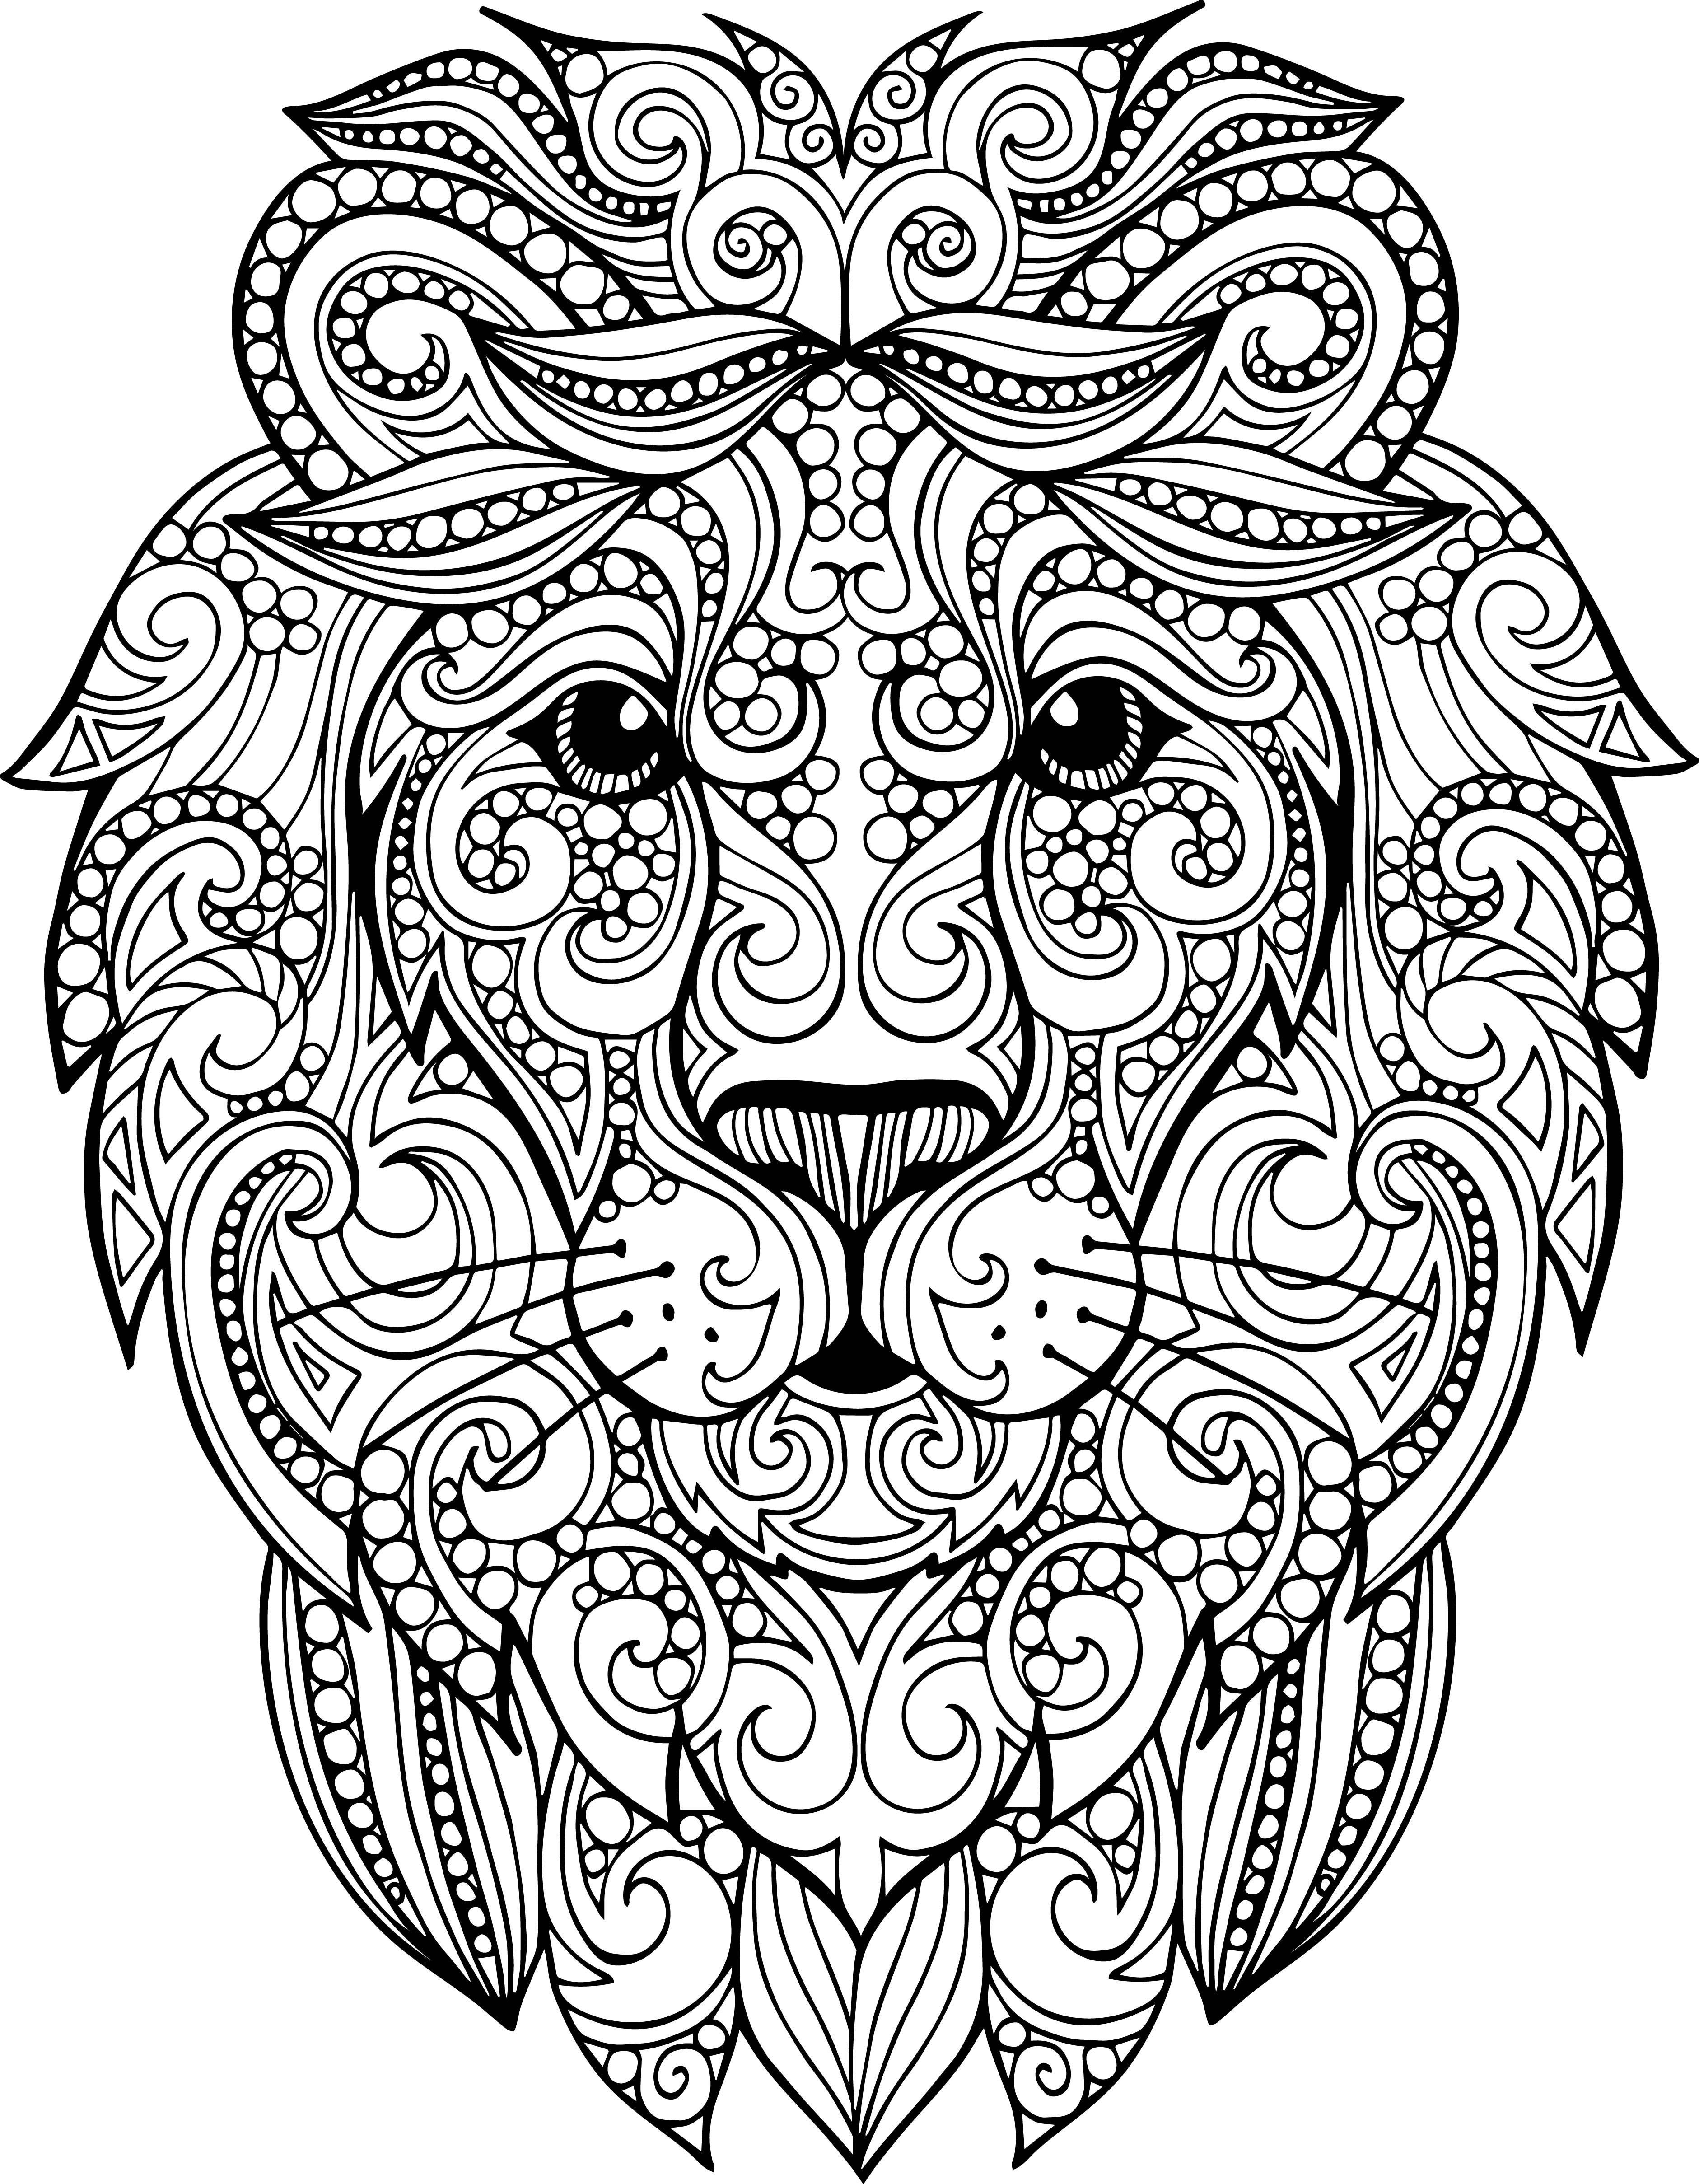 Pin On Joanna S Adult Coloring Books Vol 1 Pages [ 4835 x 3762 Pixel ]